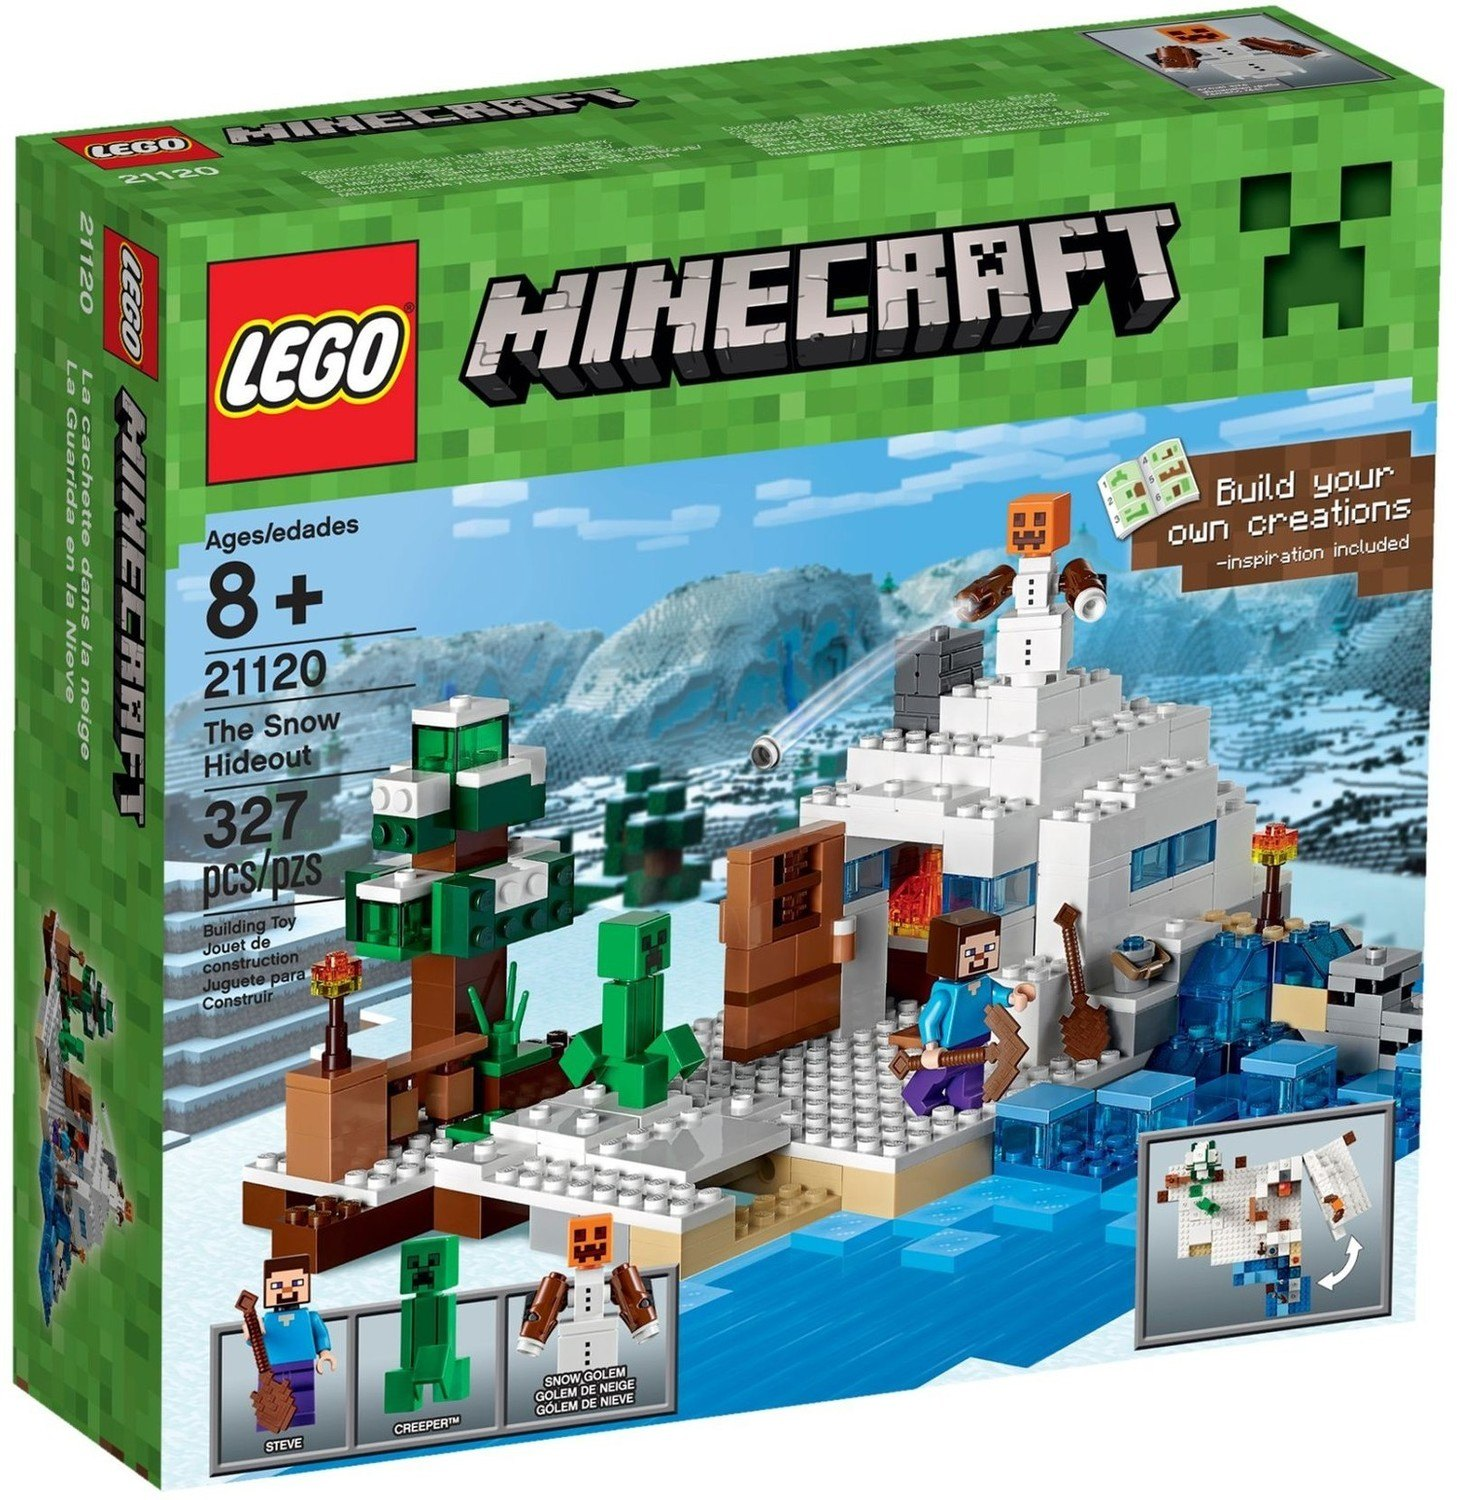 The Snow Hideout - LEGO Minecraft set 21120